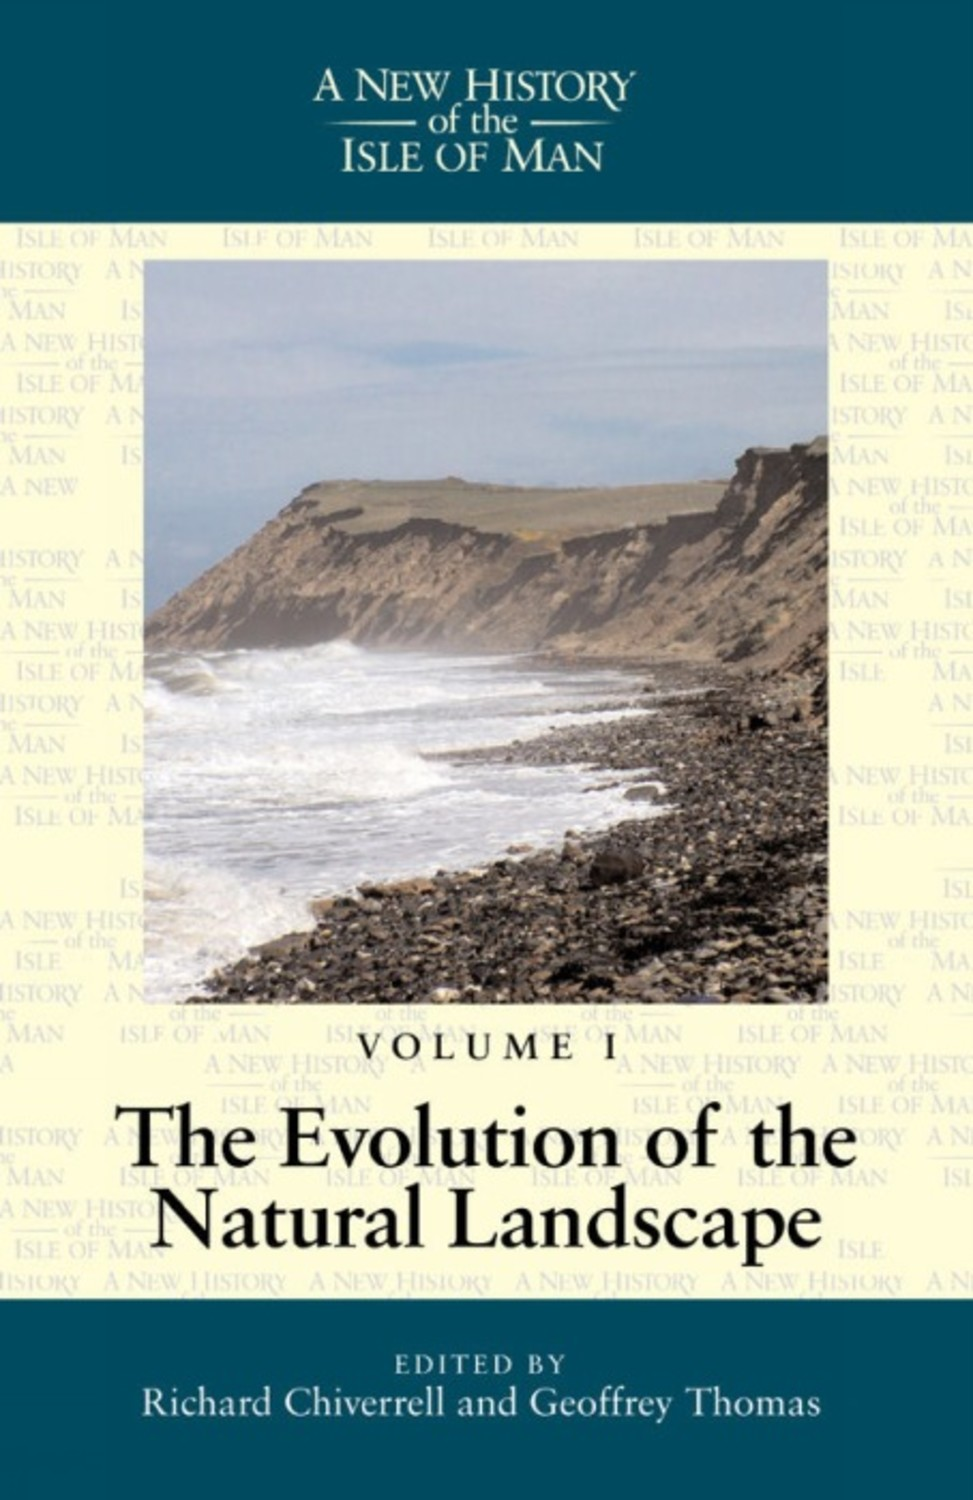 A New History of the Isle of Man Vol. 1